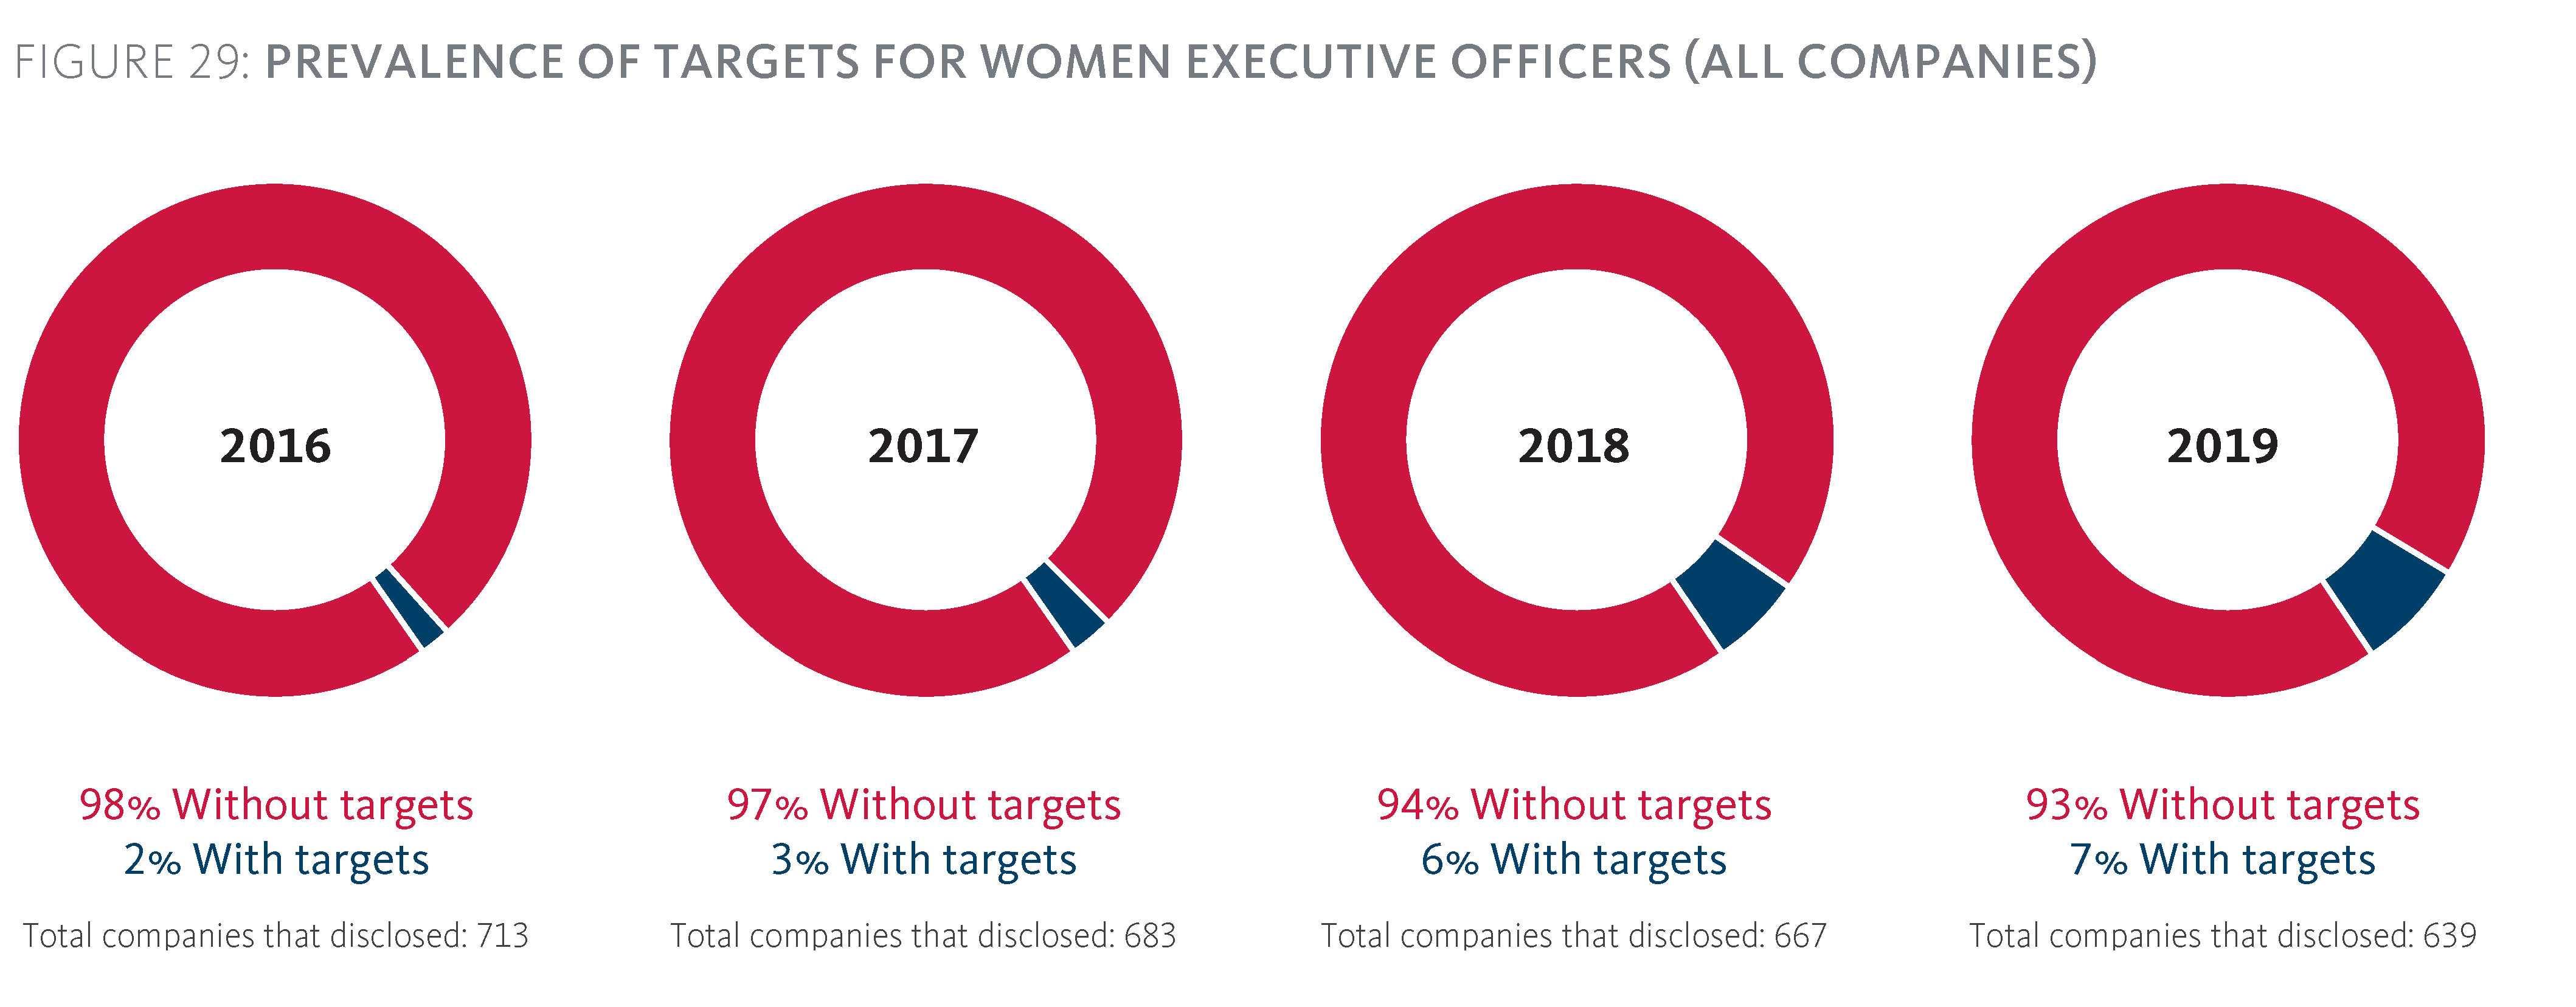 Prevalence of targets for women Executive Officers (all companies)